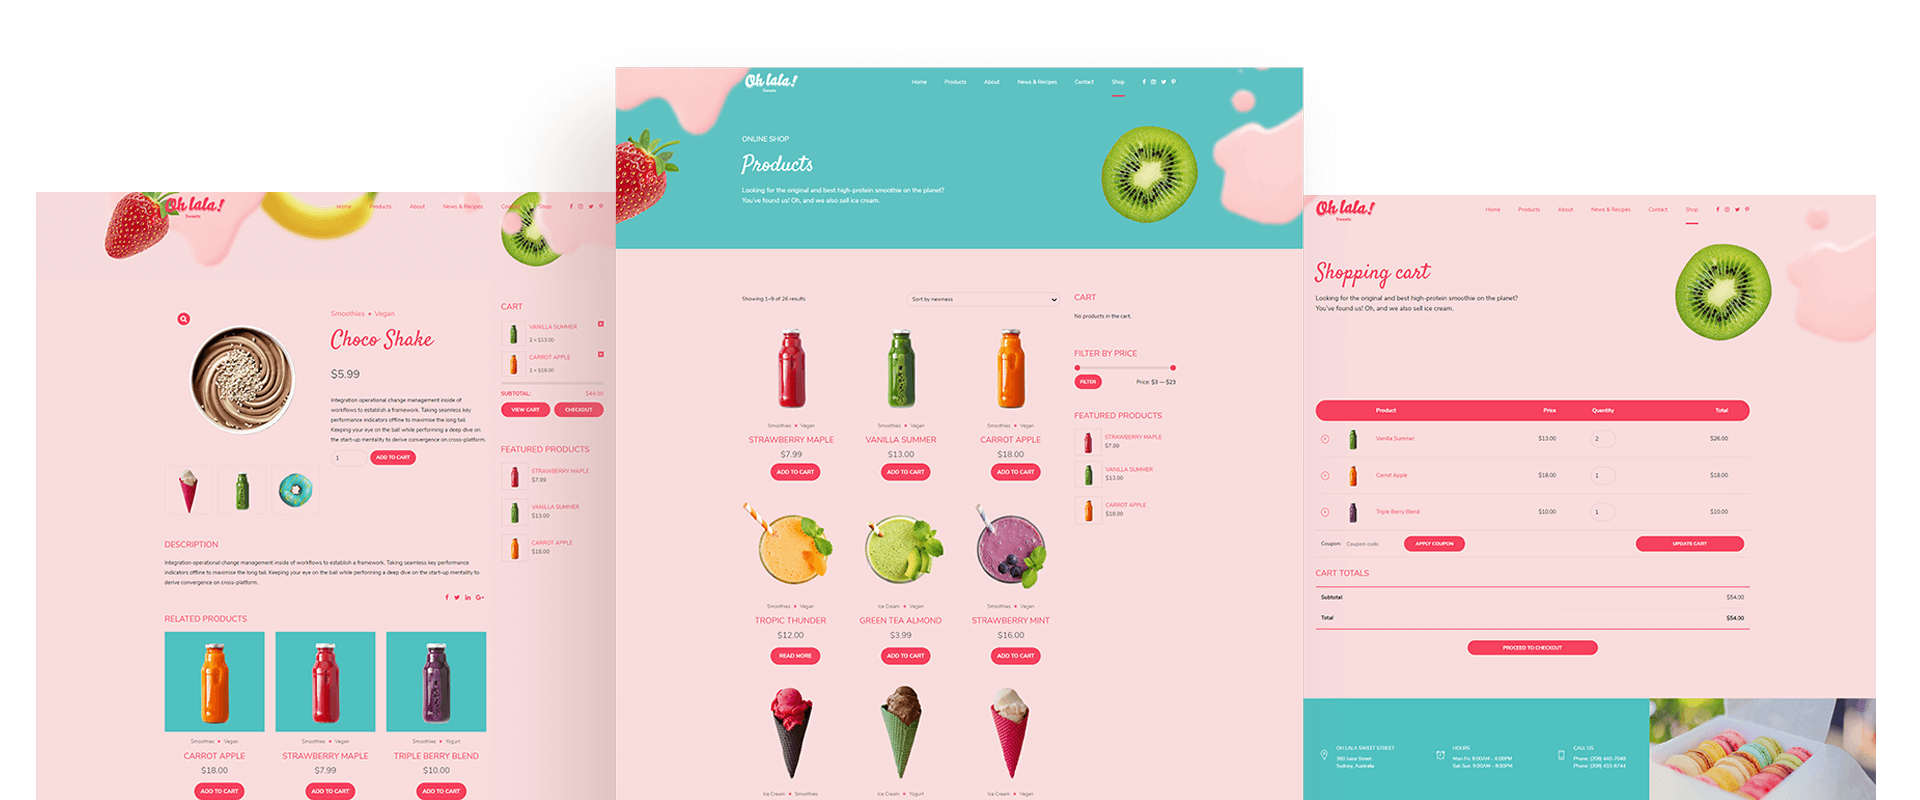 https://www.iscreamrolls.rs/wp-content/uploads/2017/05/sample_shop_preview.png